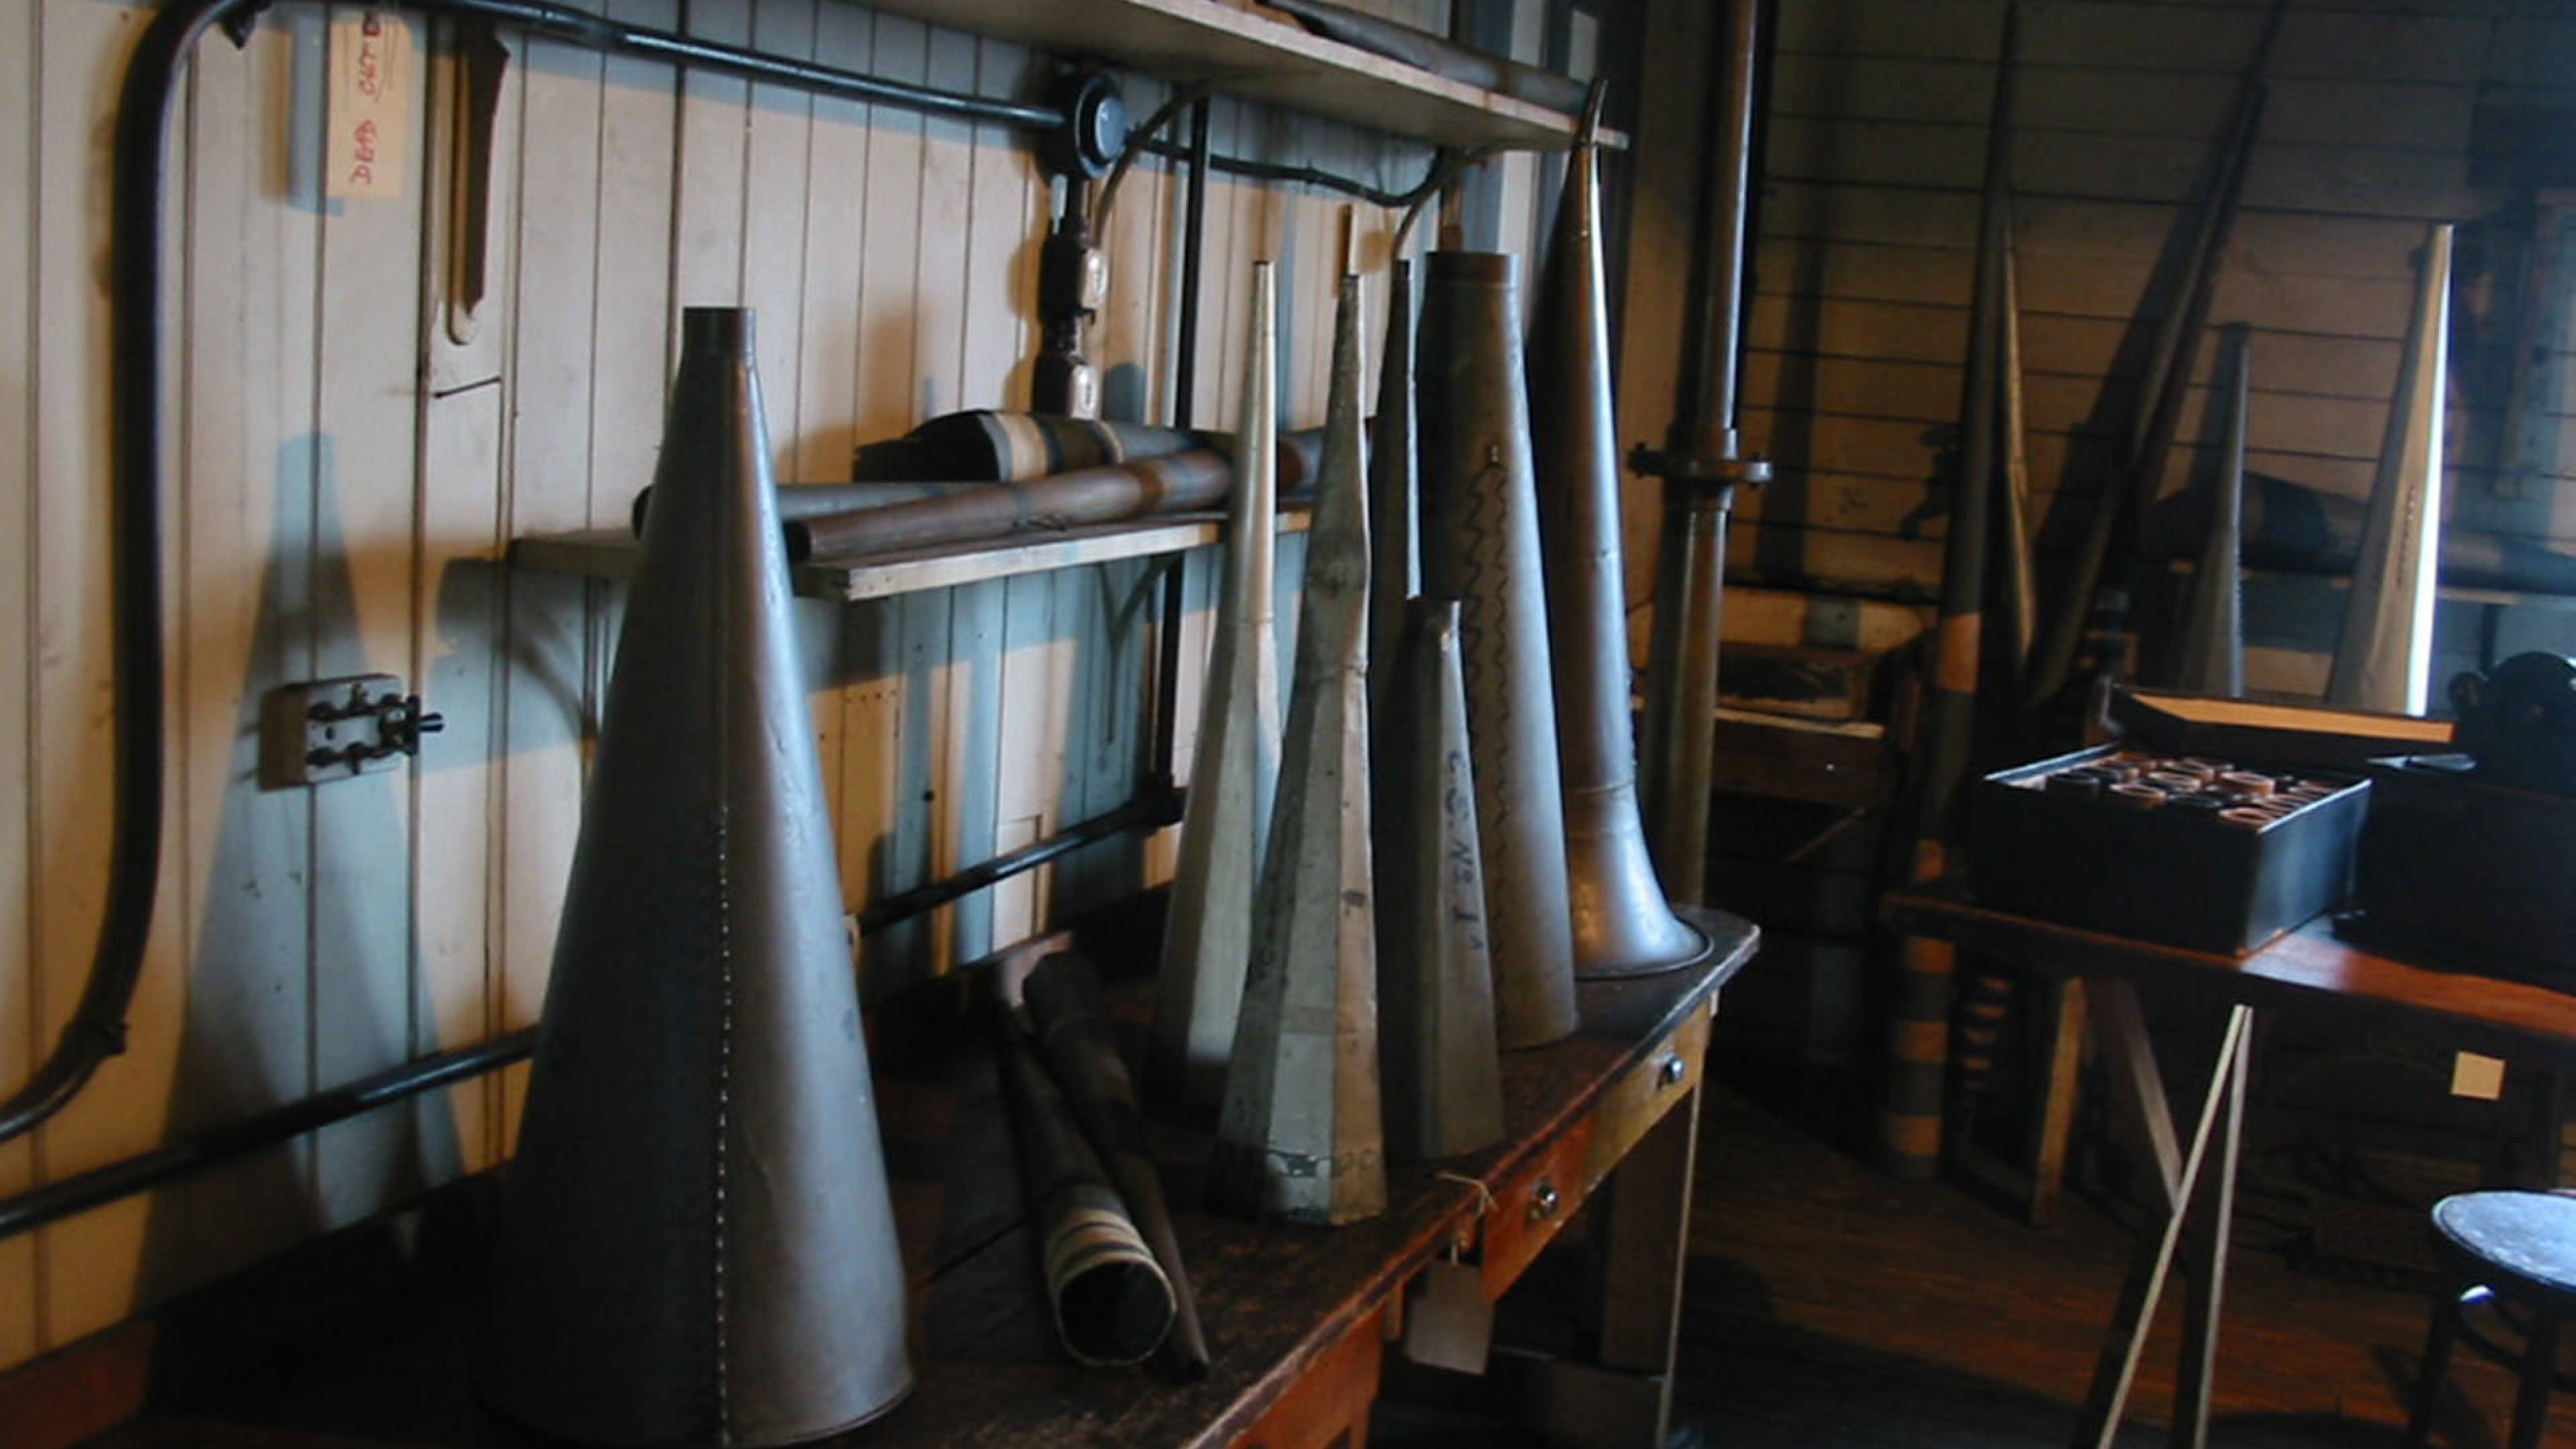 Acoustic horn research room at Thomas Edison National Park